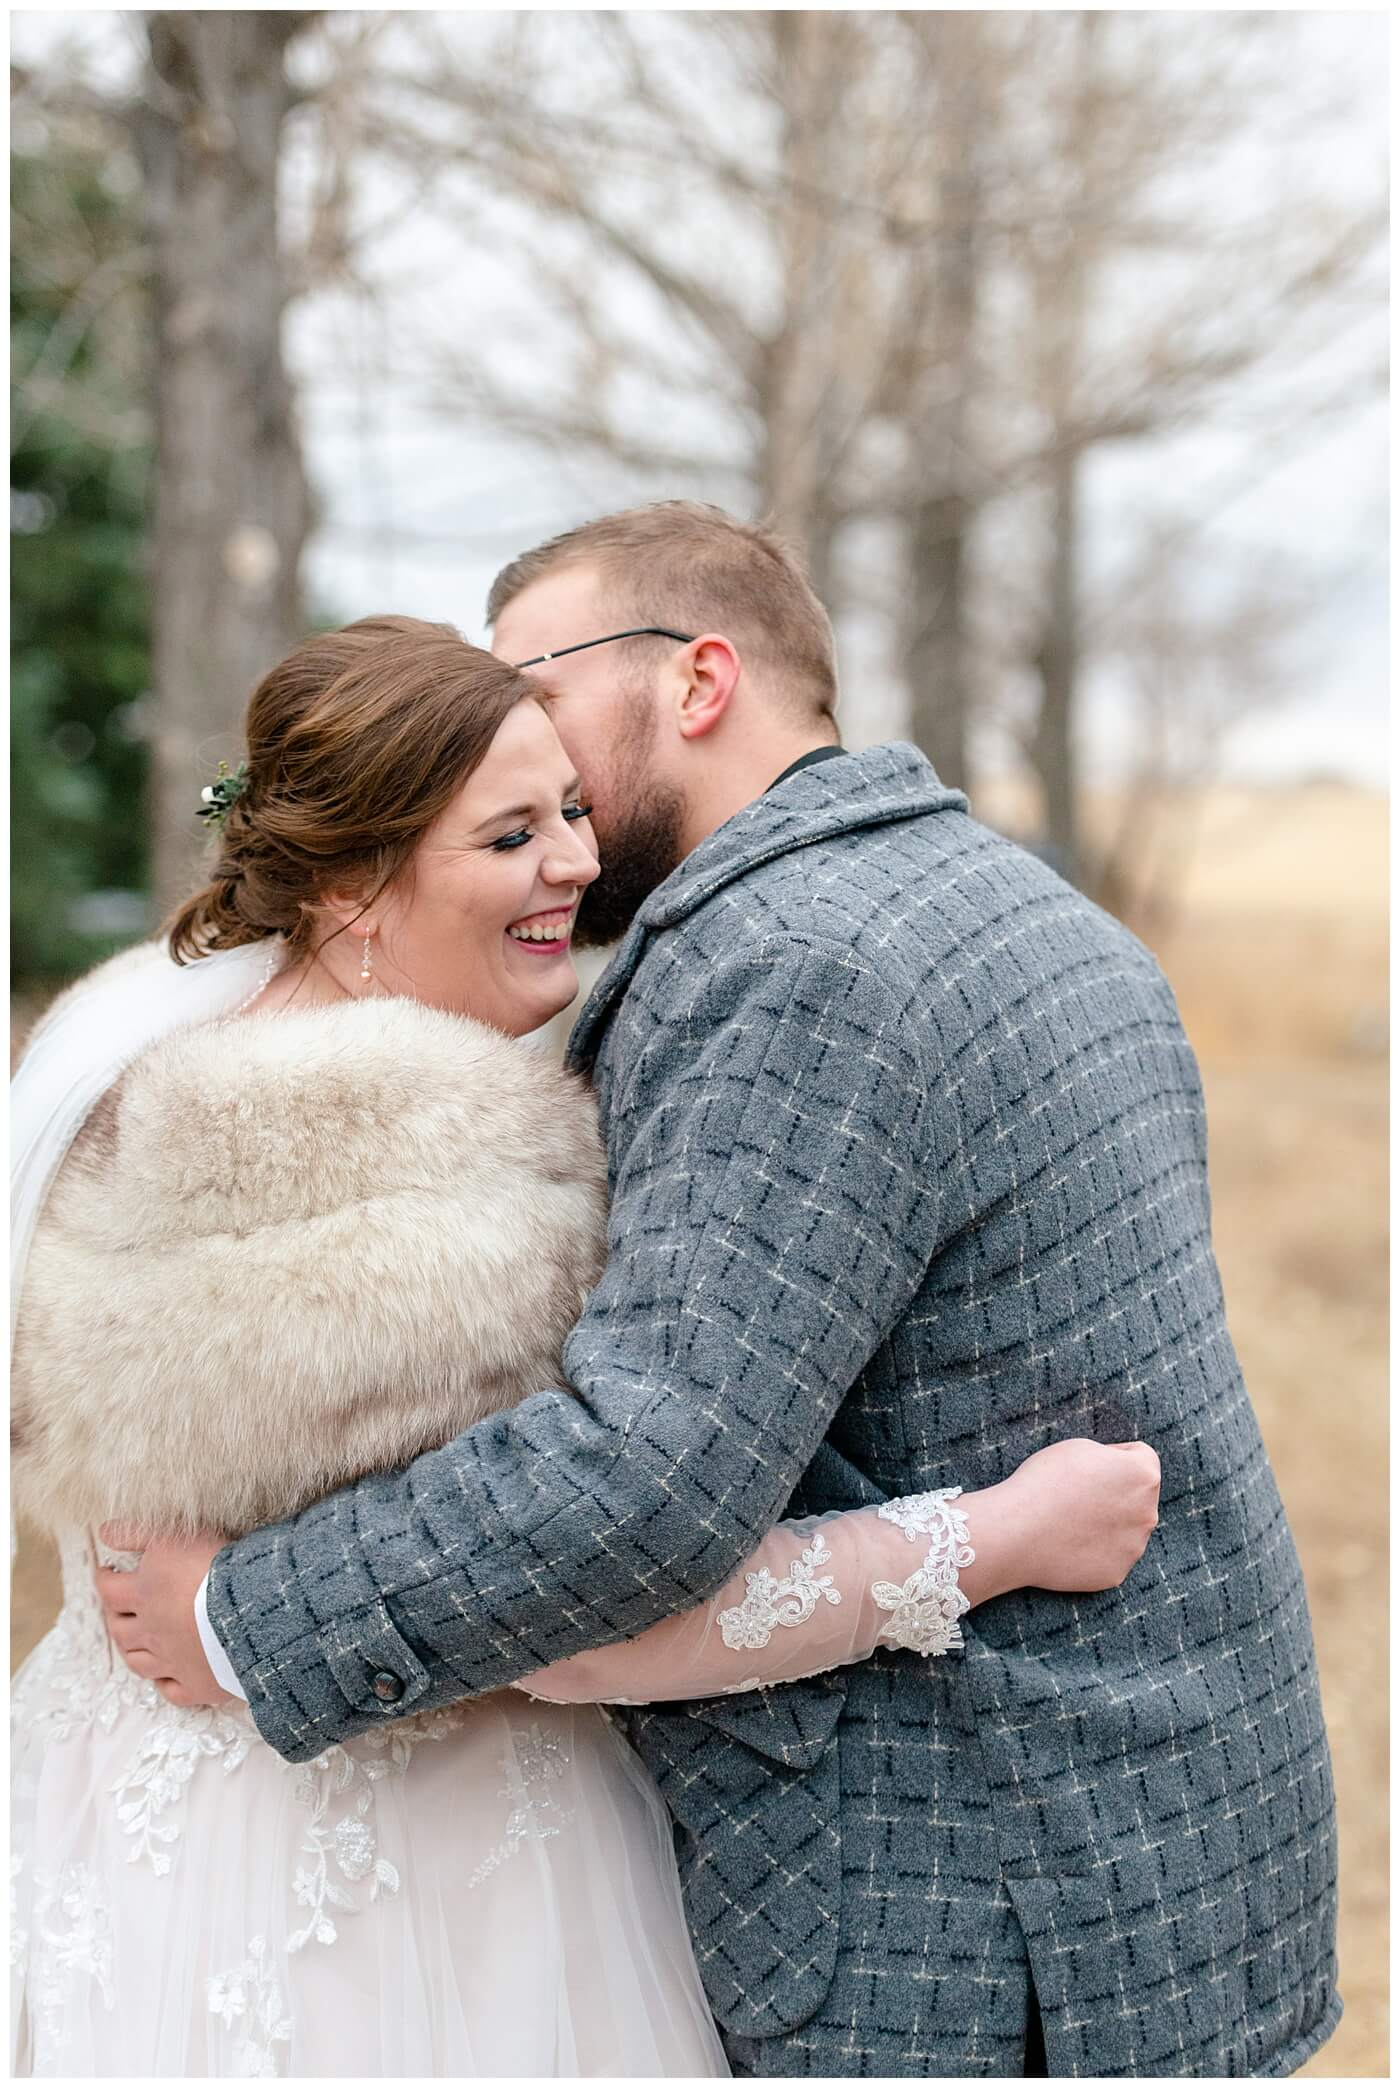 Regina Wedding Photographer - Kolton - Maxine - Groom whispers in the brides ear as he keeps her warm